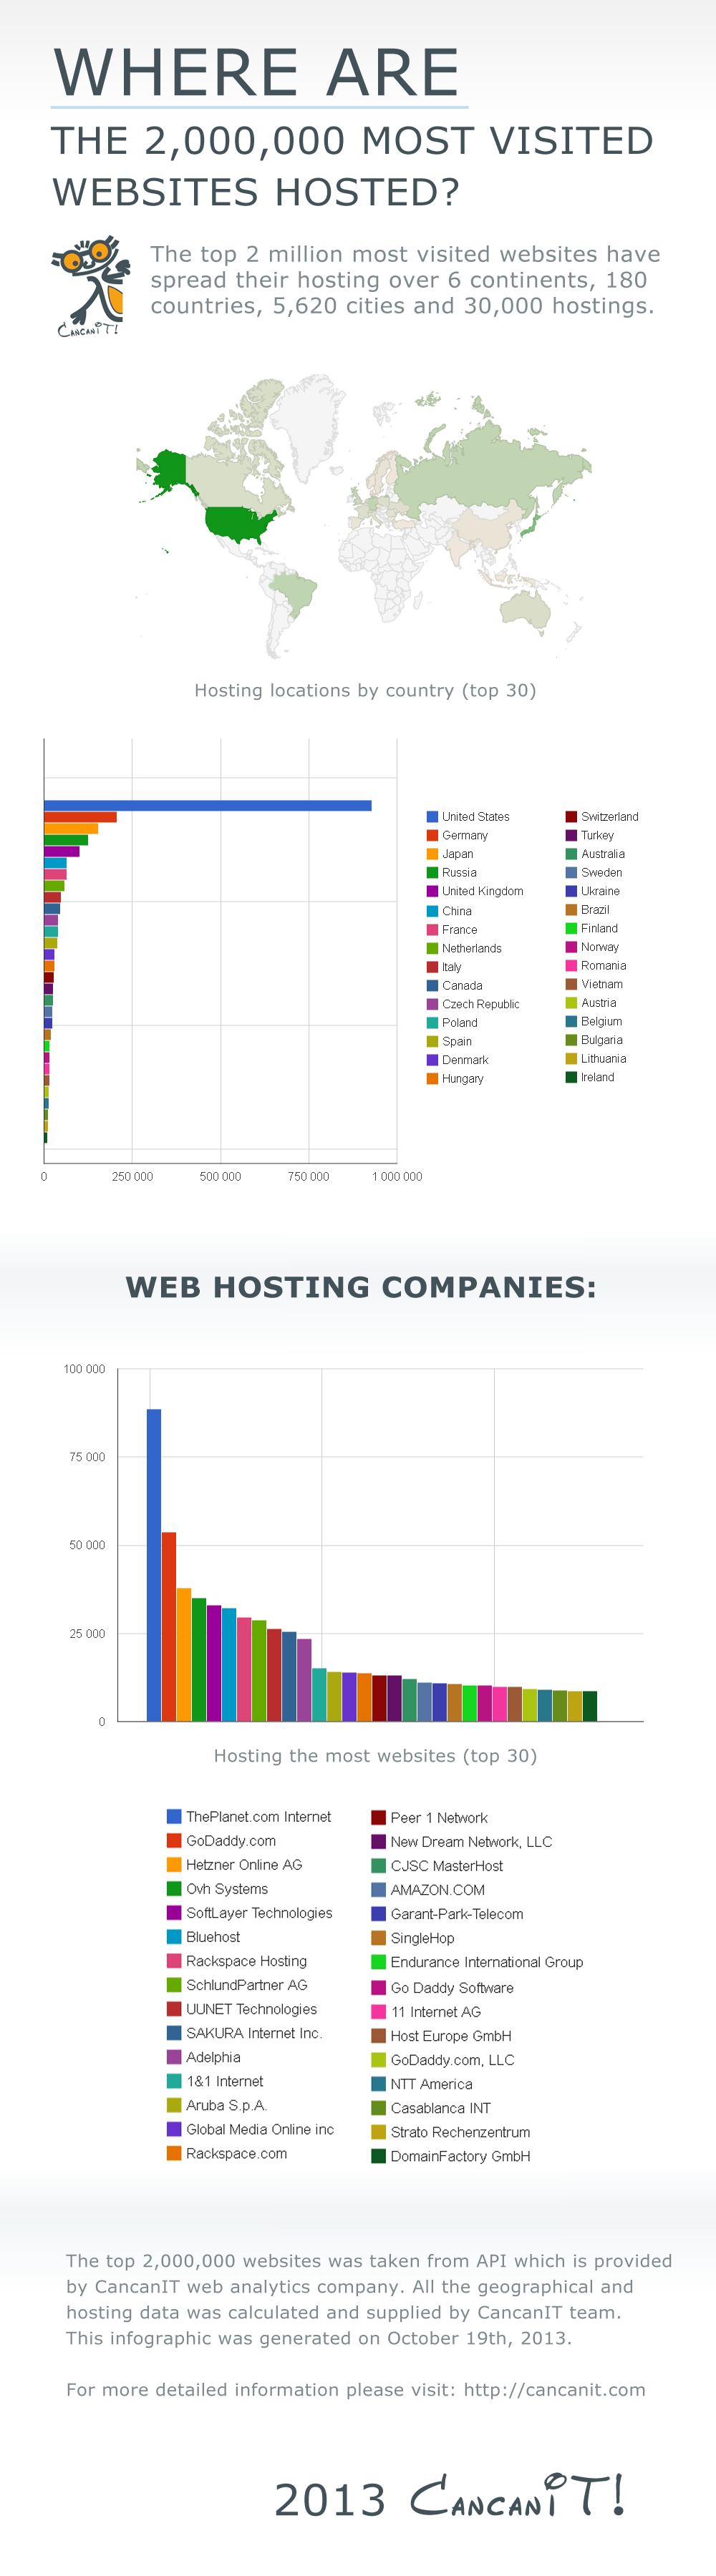 where-are-the-most-visited-websites-hosted_52655b3873572